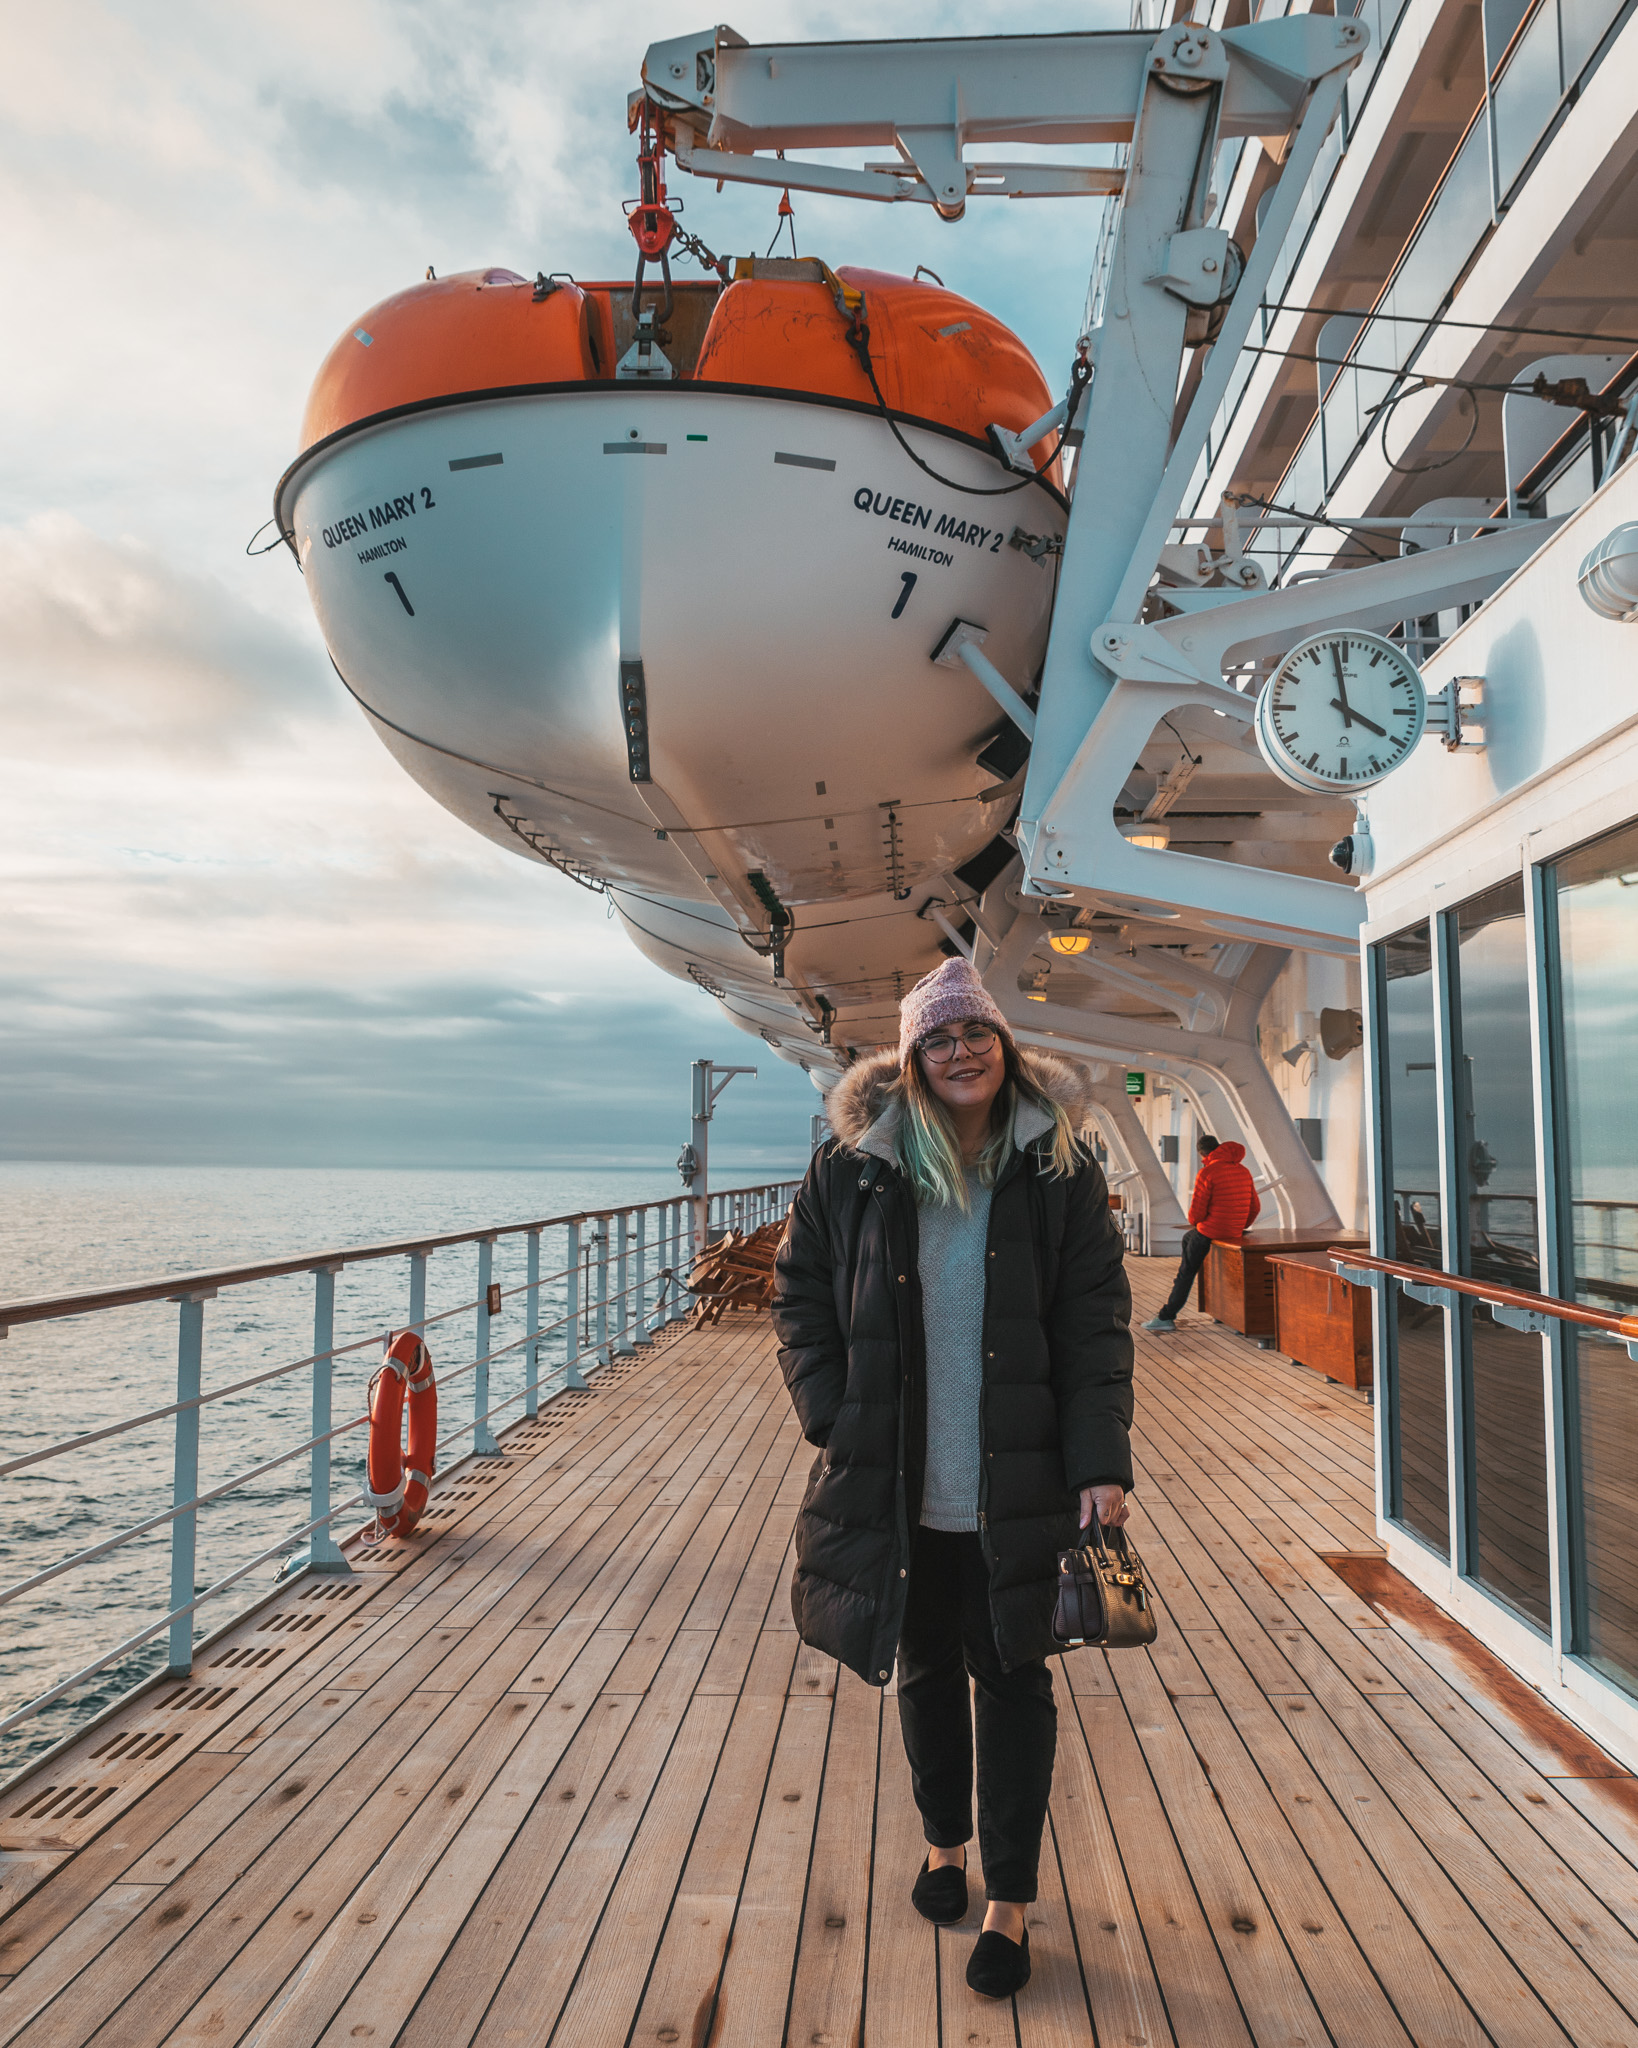 Walking the QM2's decks // Transatlantic Cruising on the Cunard Queen Mary 2 #readysetjetset